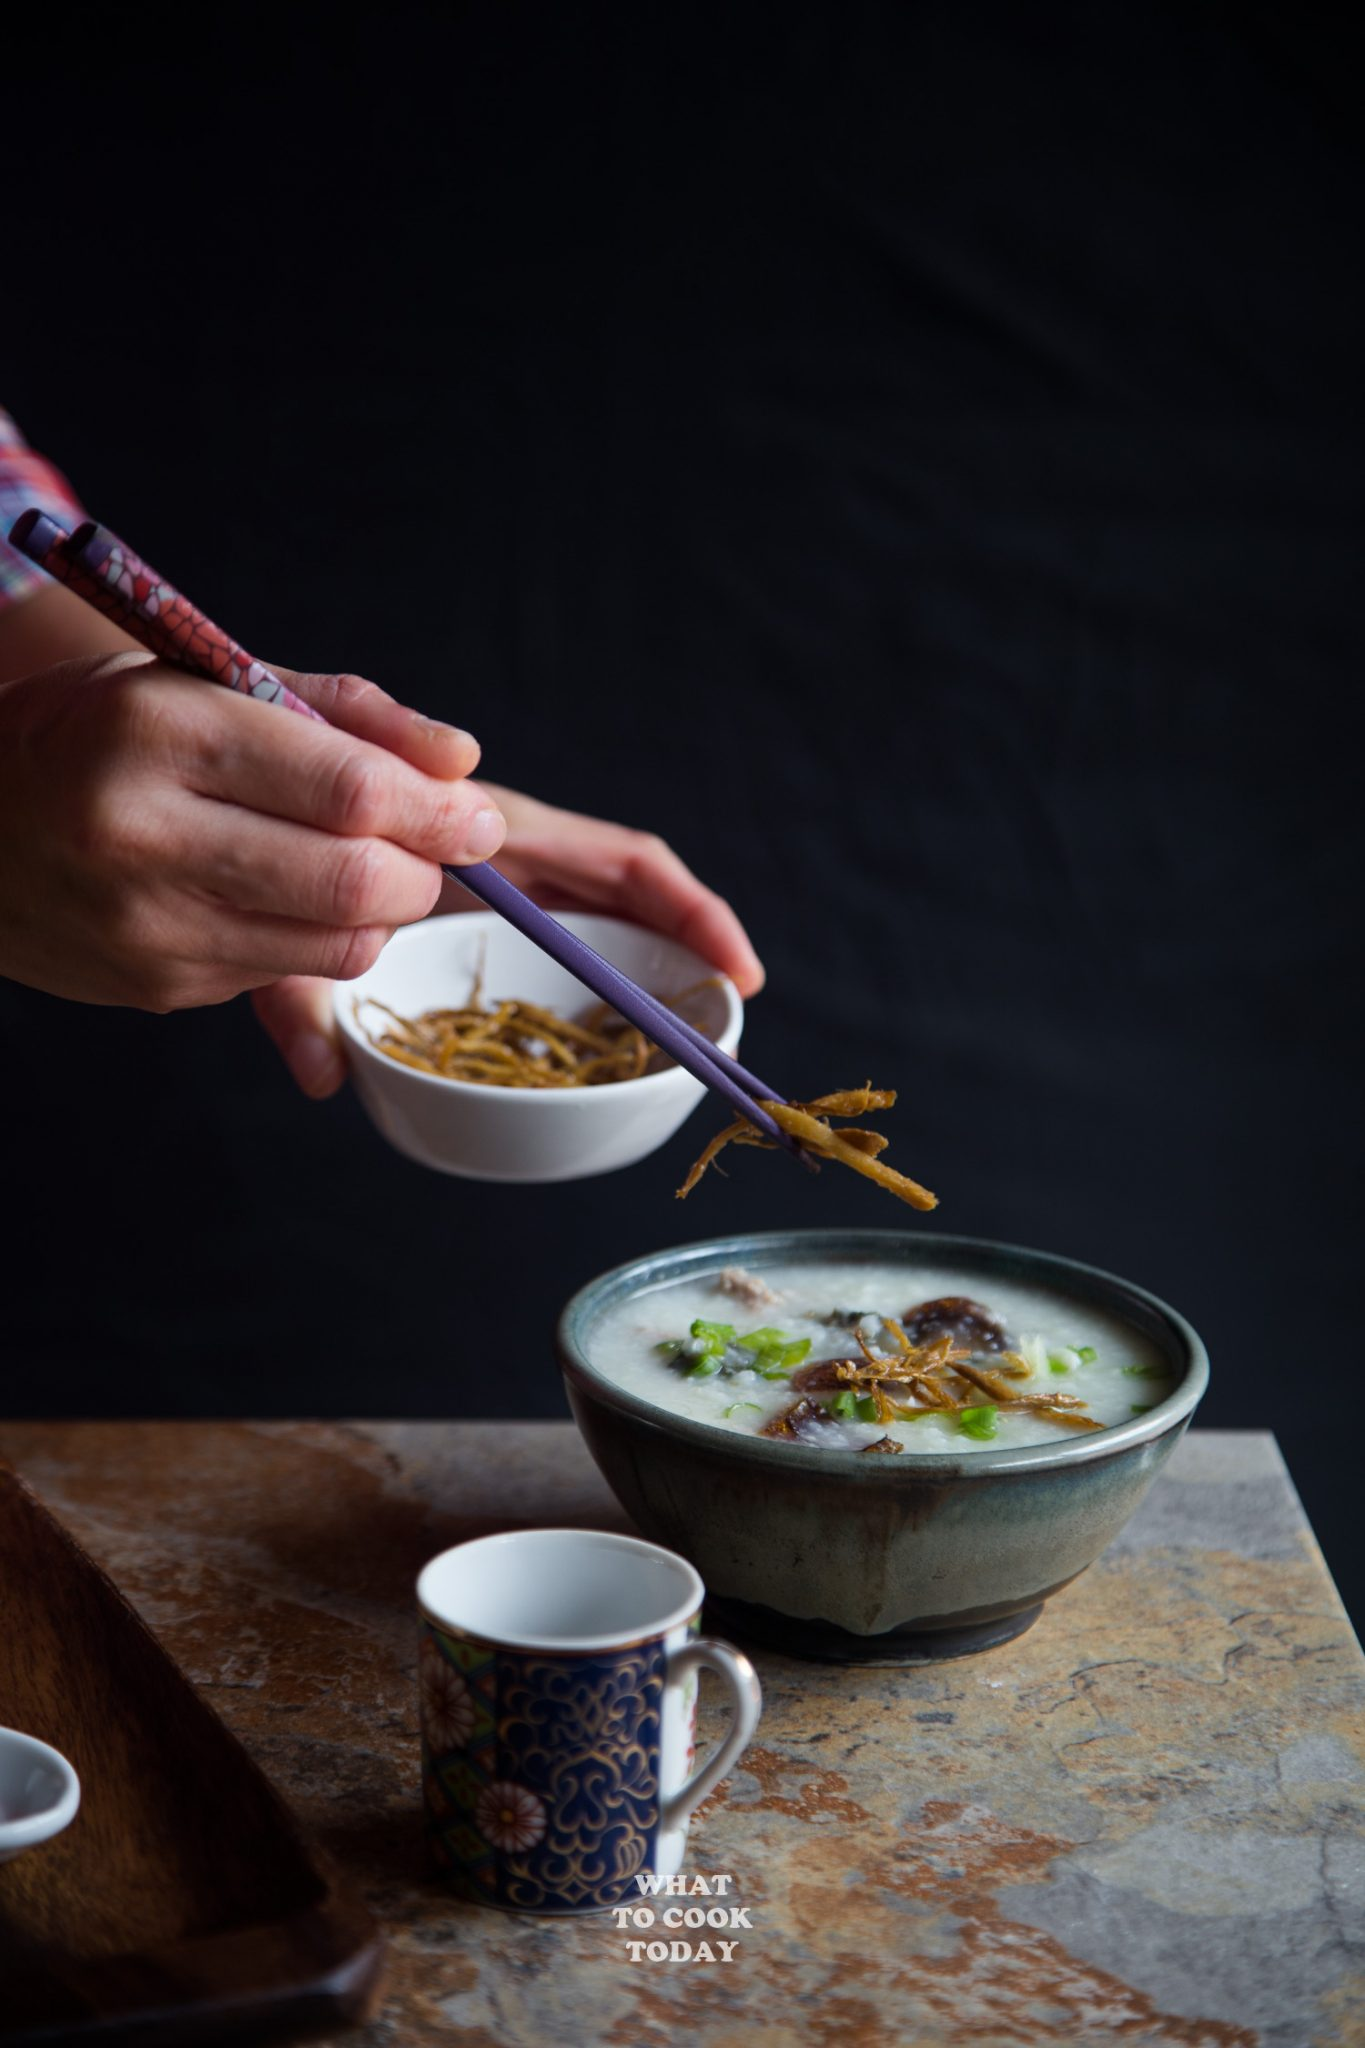 Pork and century egg congee (Bubur pitan) with crispy ginger